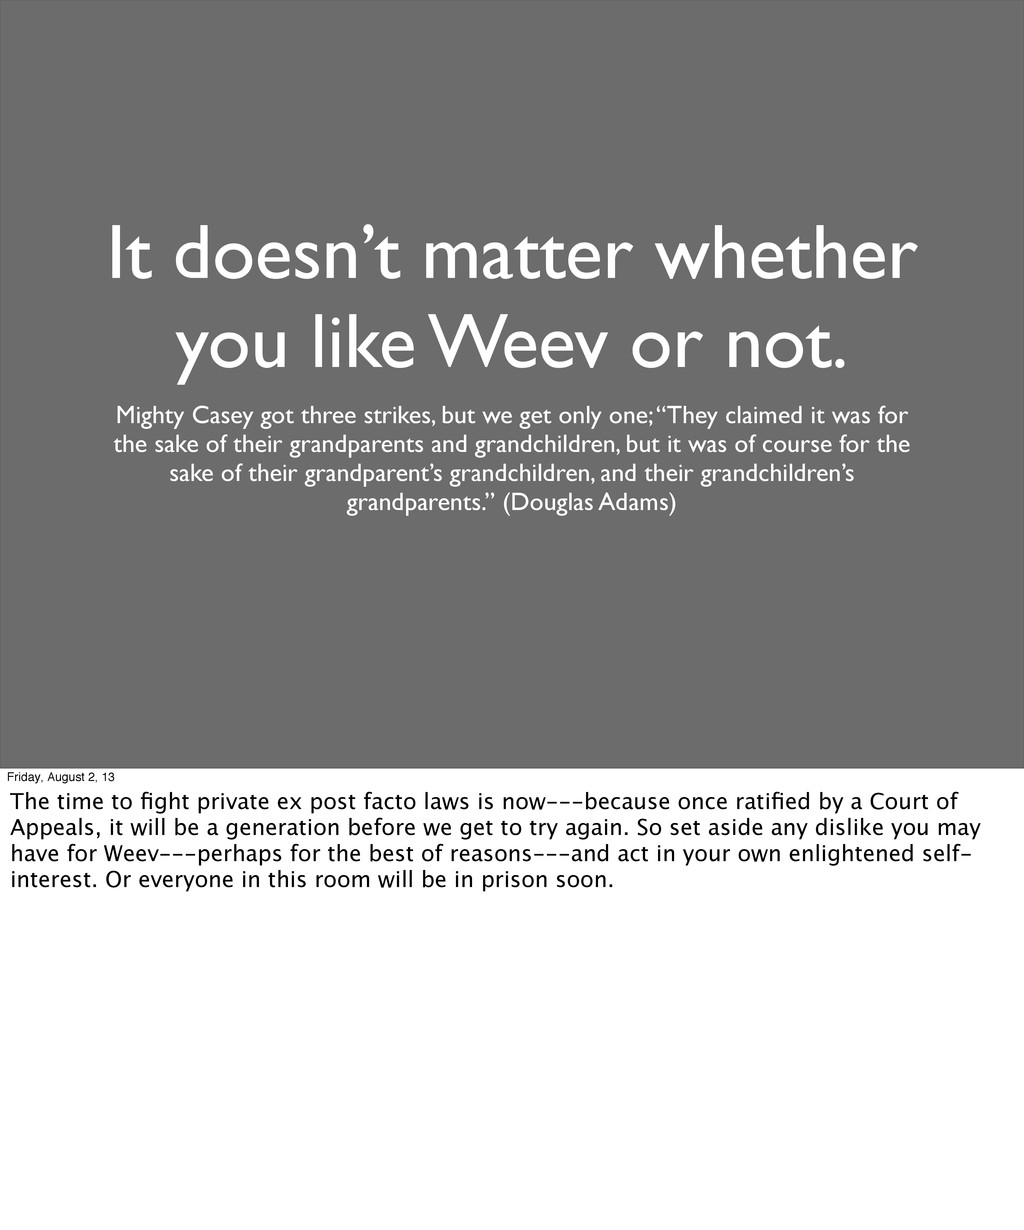 It doesn't matter whether you like Weev or not....